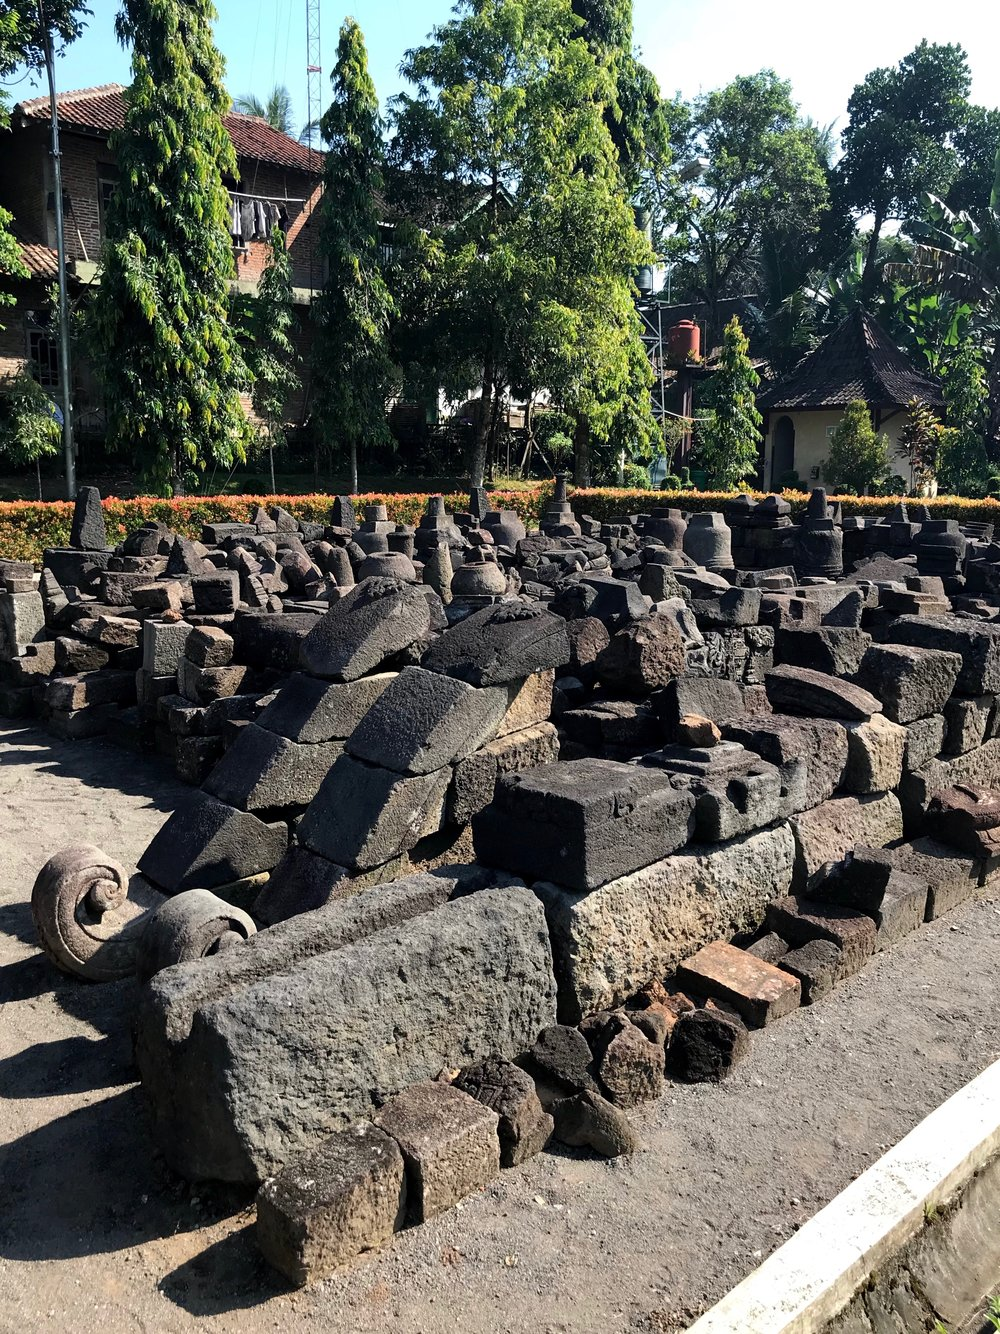 Parts of the temple have been excavated but not rebuilt, as they're missing pieces